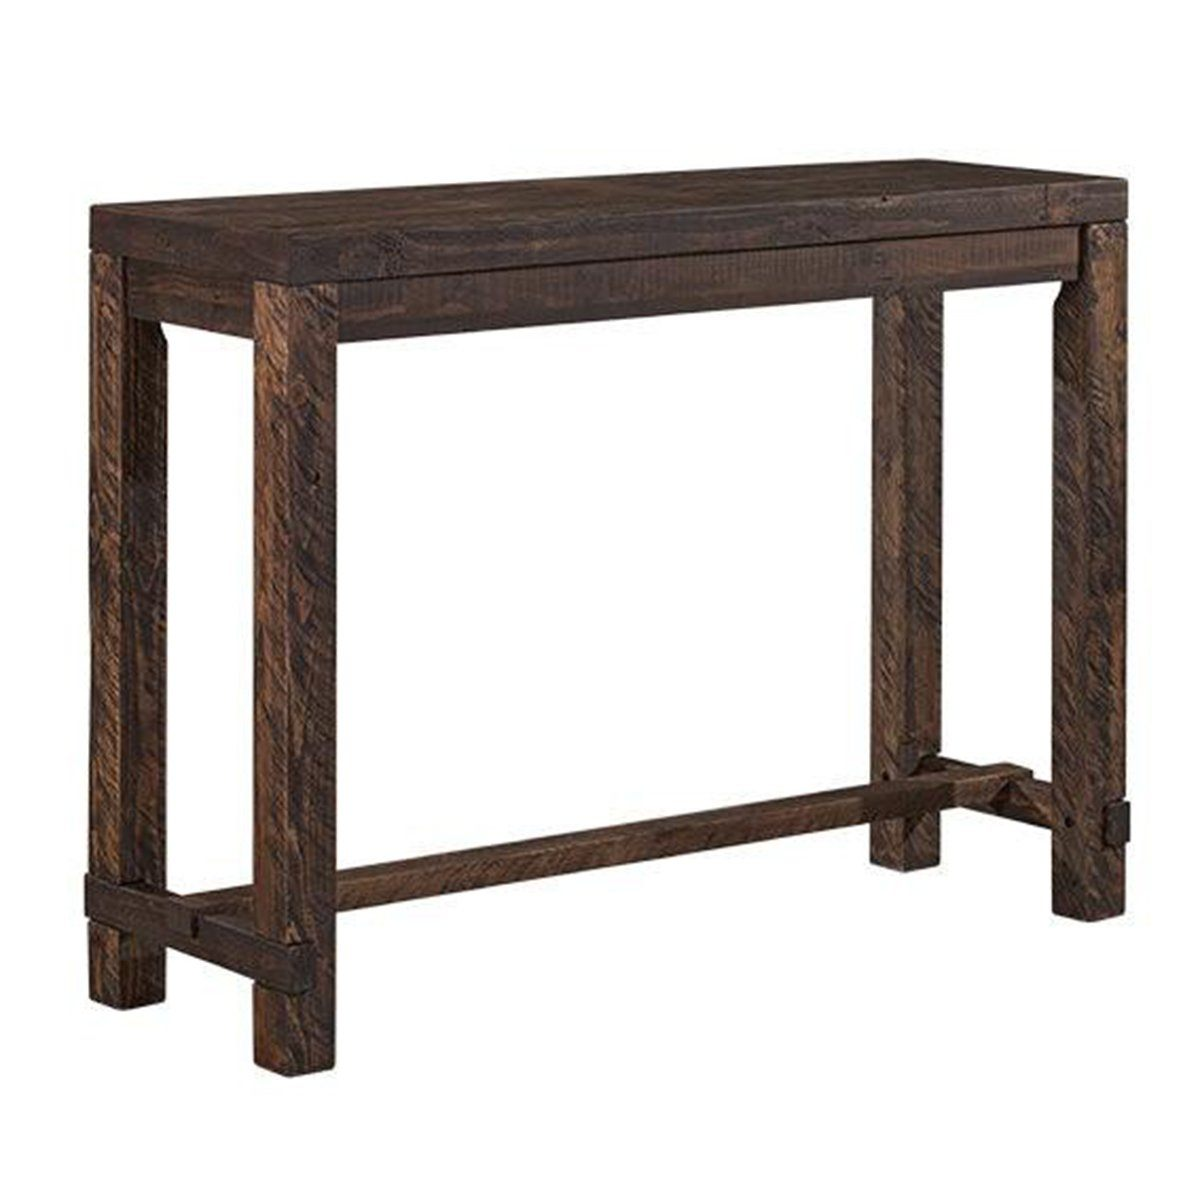 SOLID WOOD Half Bar - Showhome Furniture